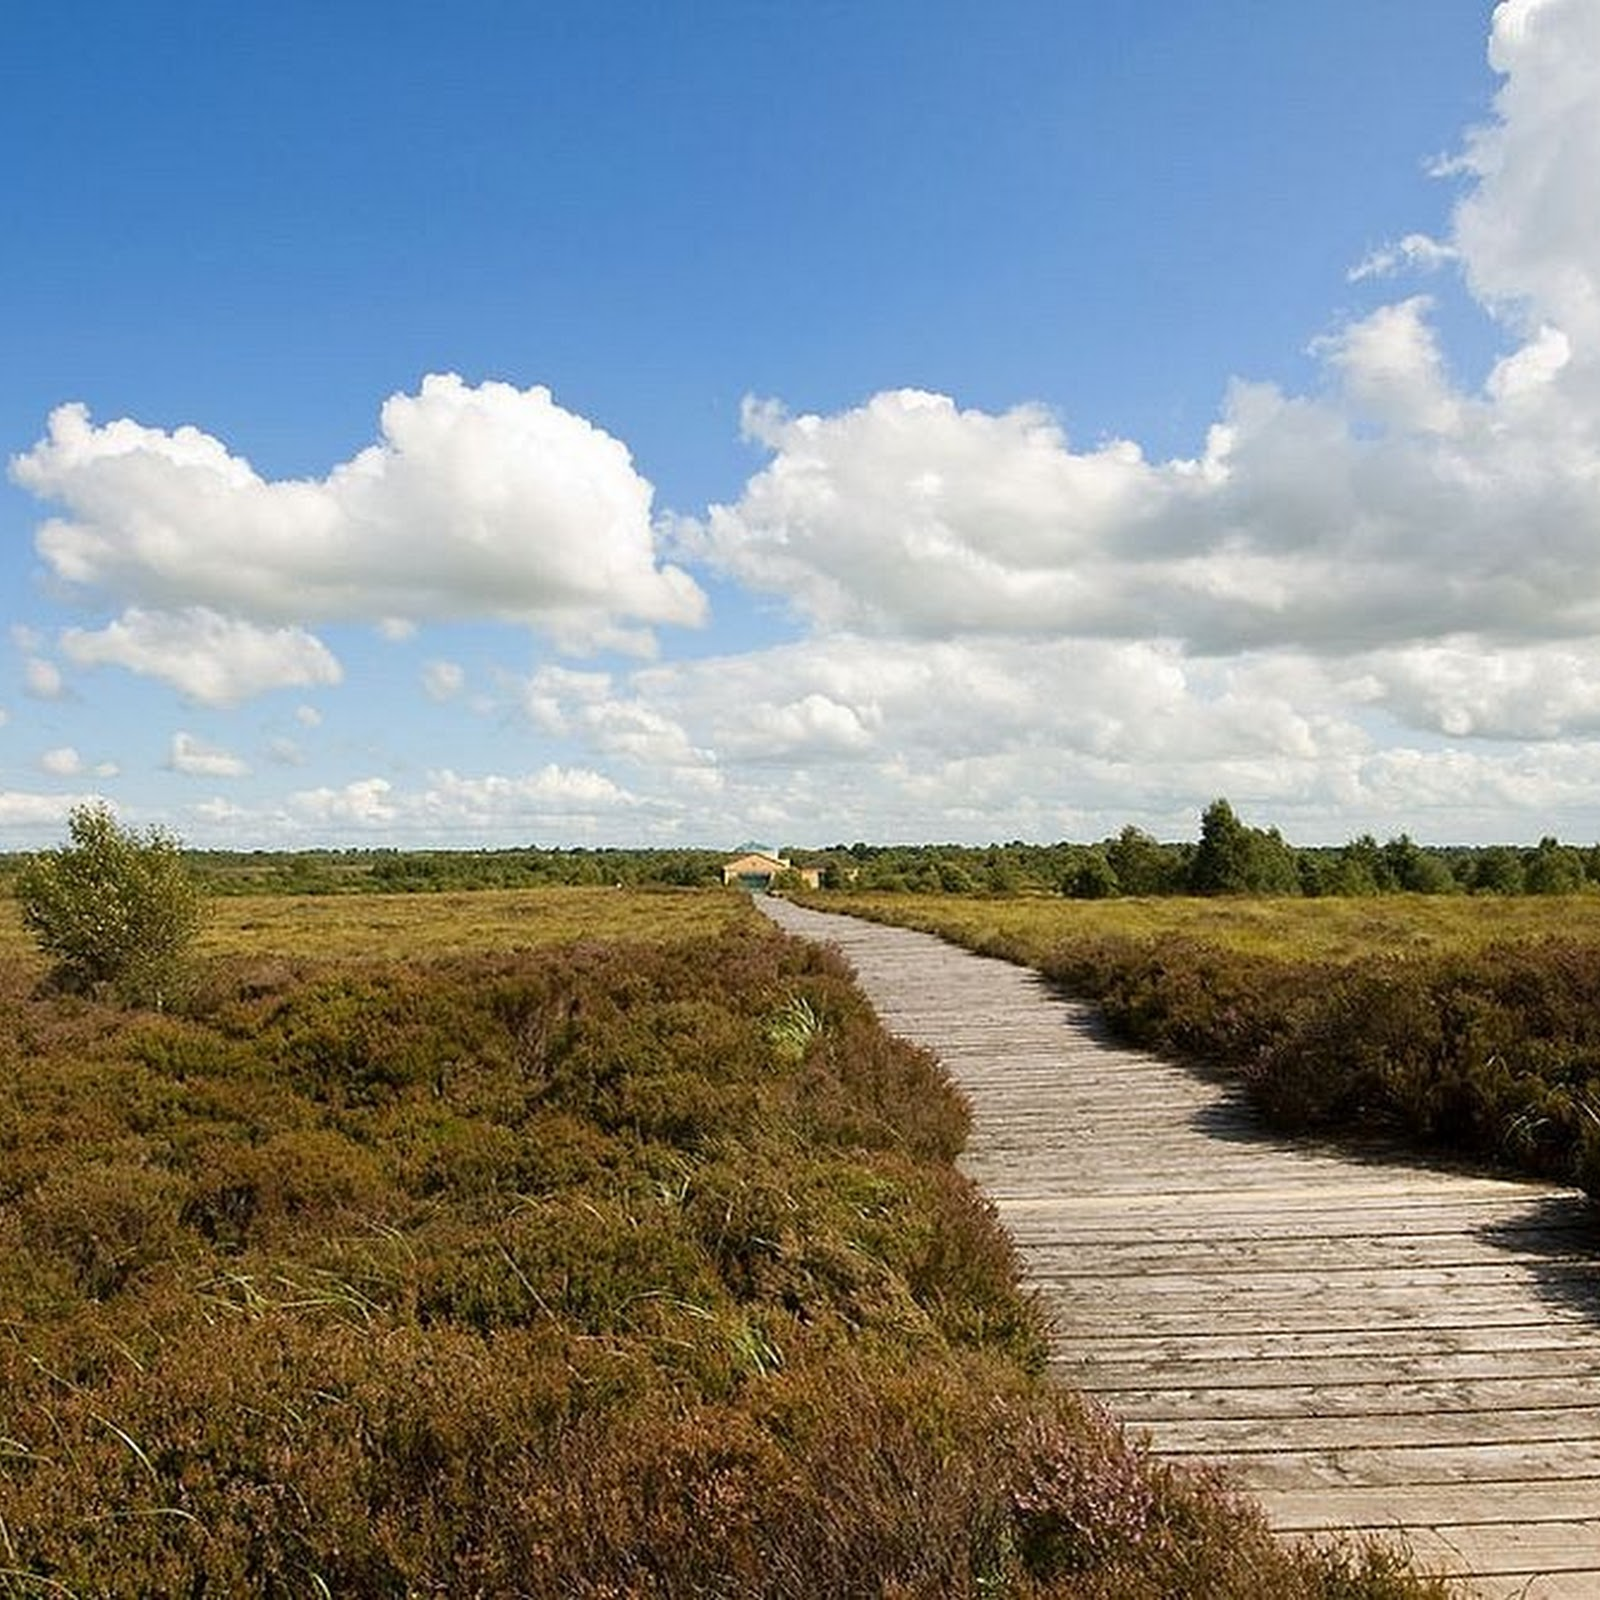 Corlea Trackway: A 2,000-Year-Old Wooden Road in Ireland